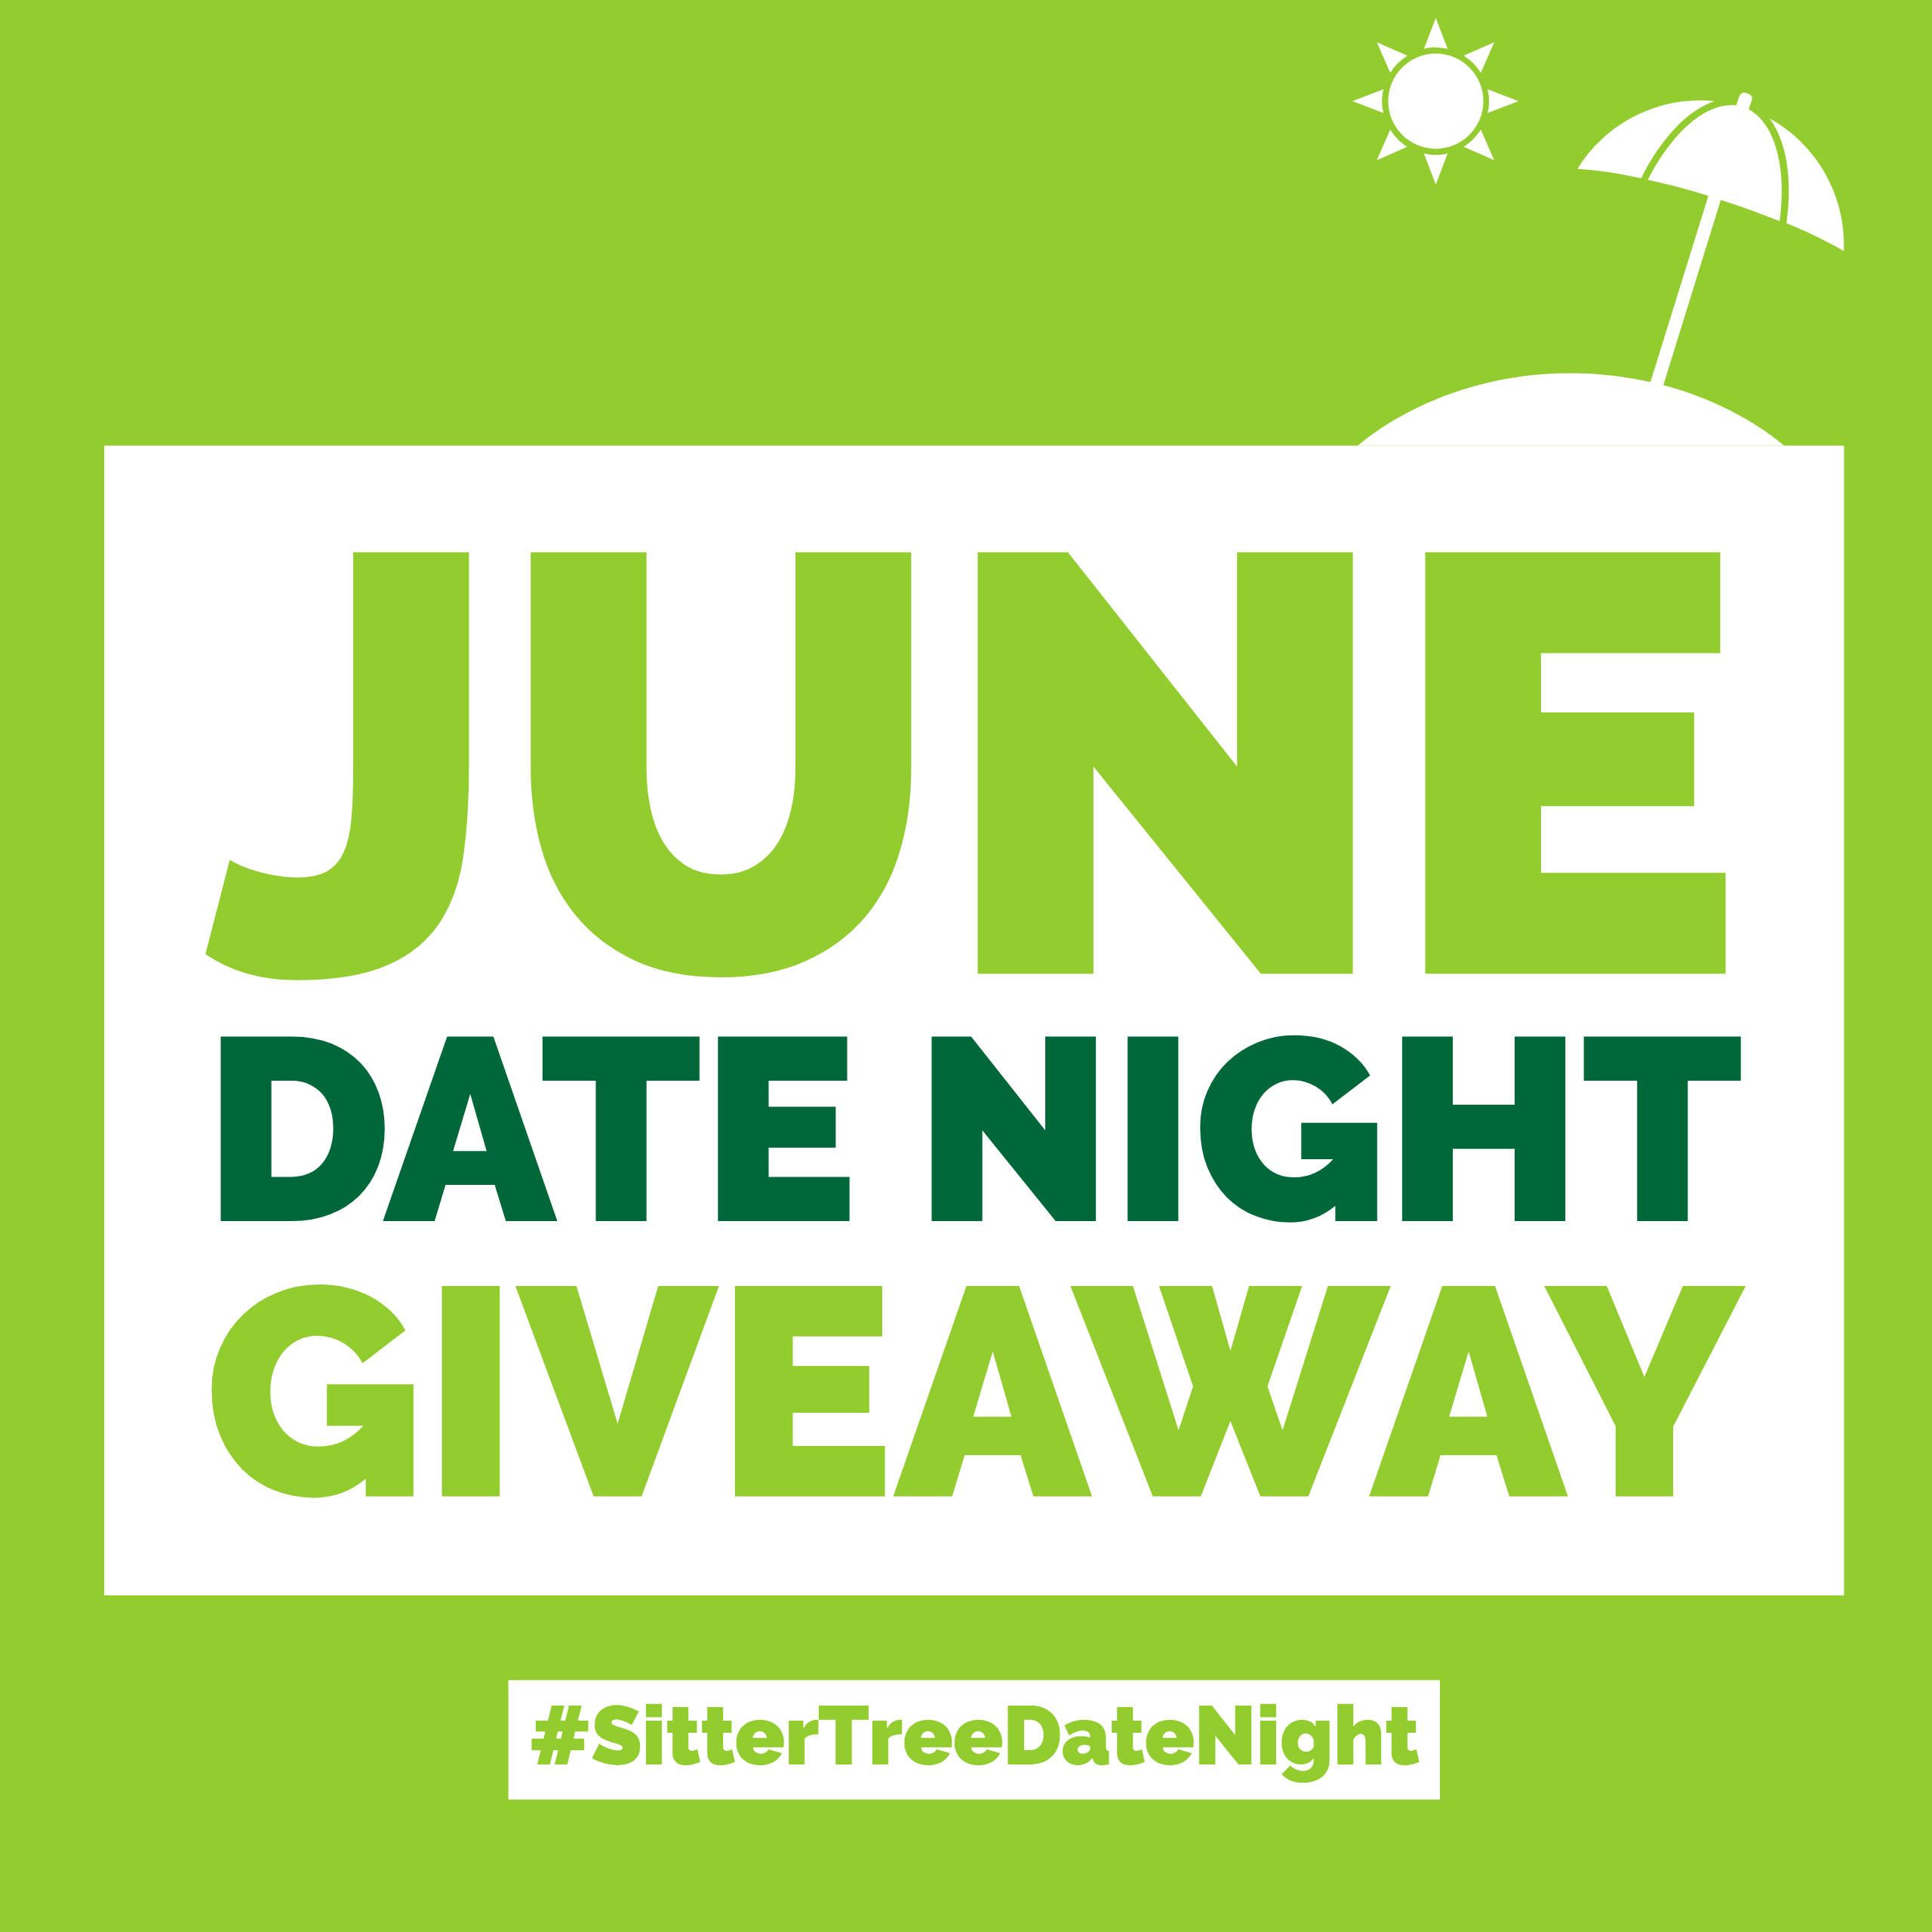 June Date Night Giveaway: FREE Babysitting + $100 Gift card